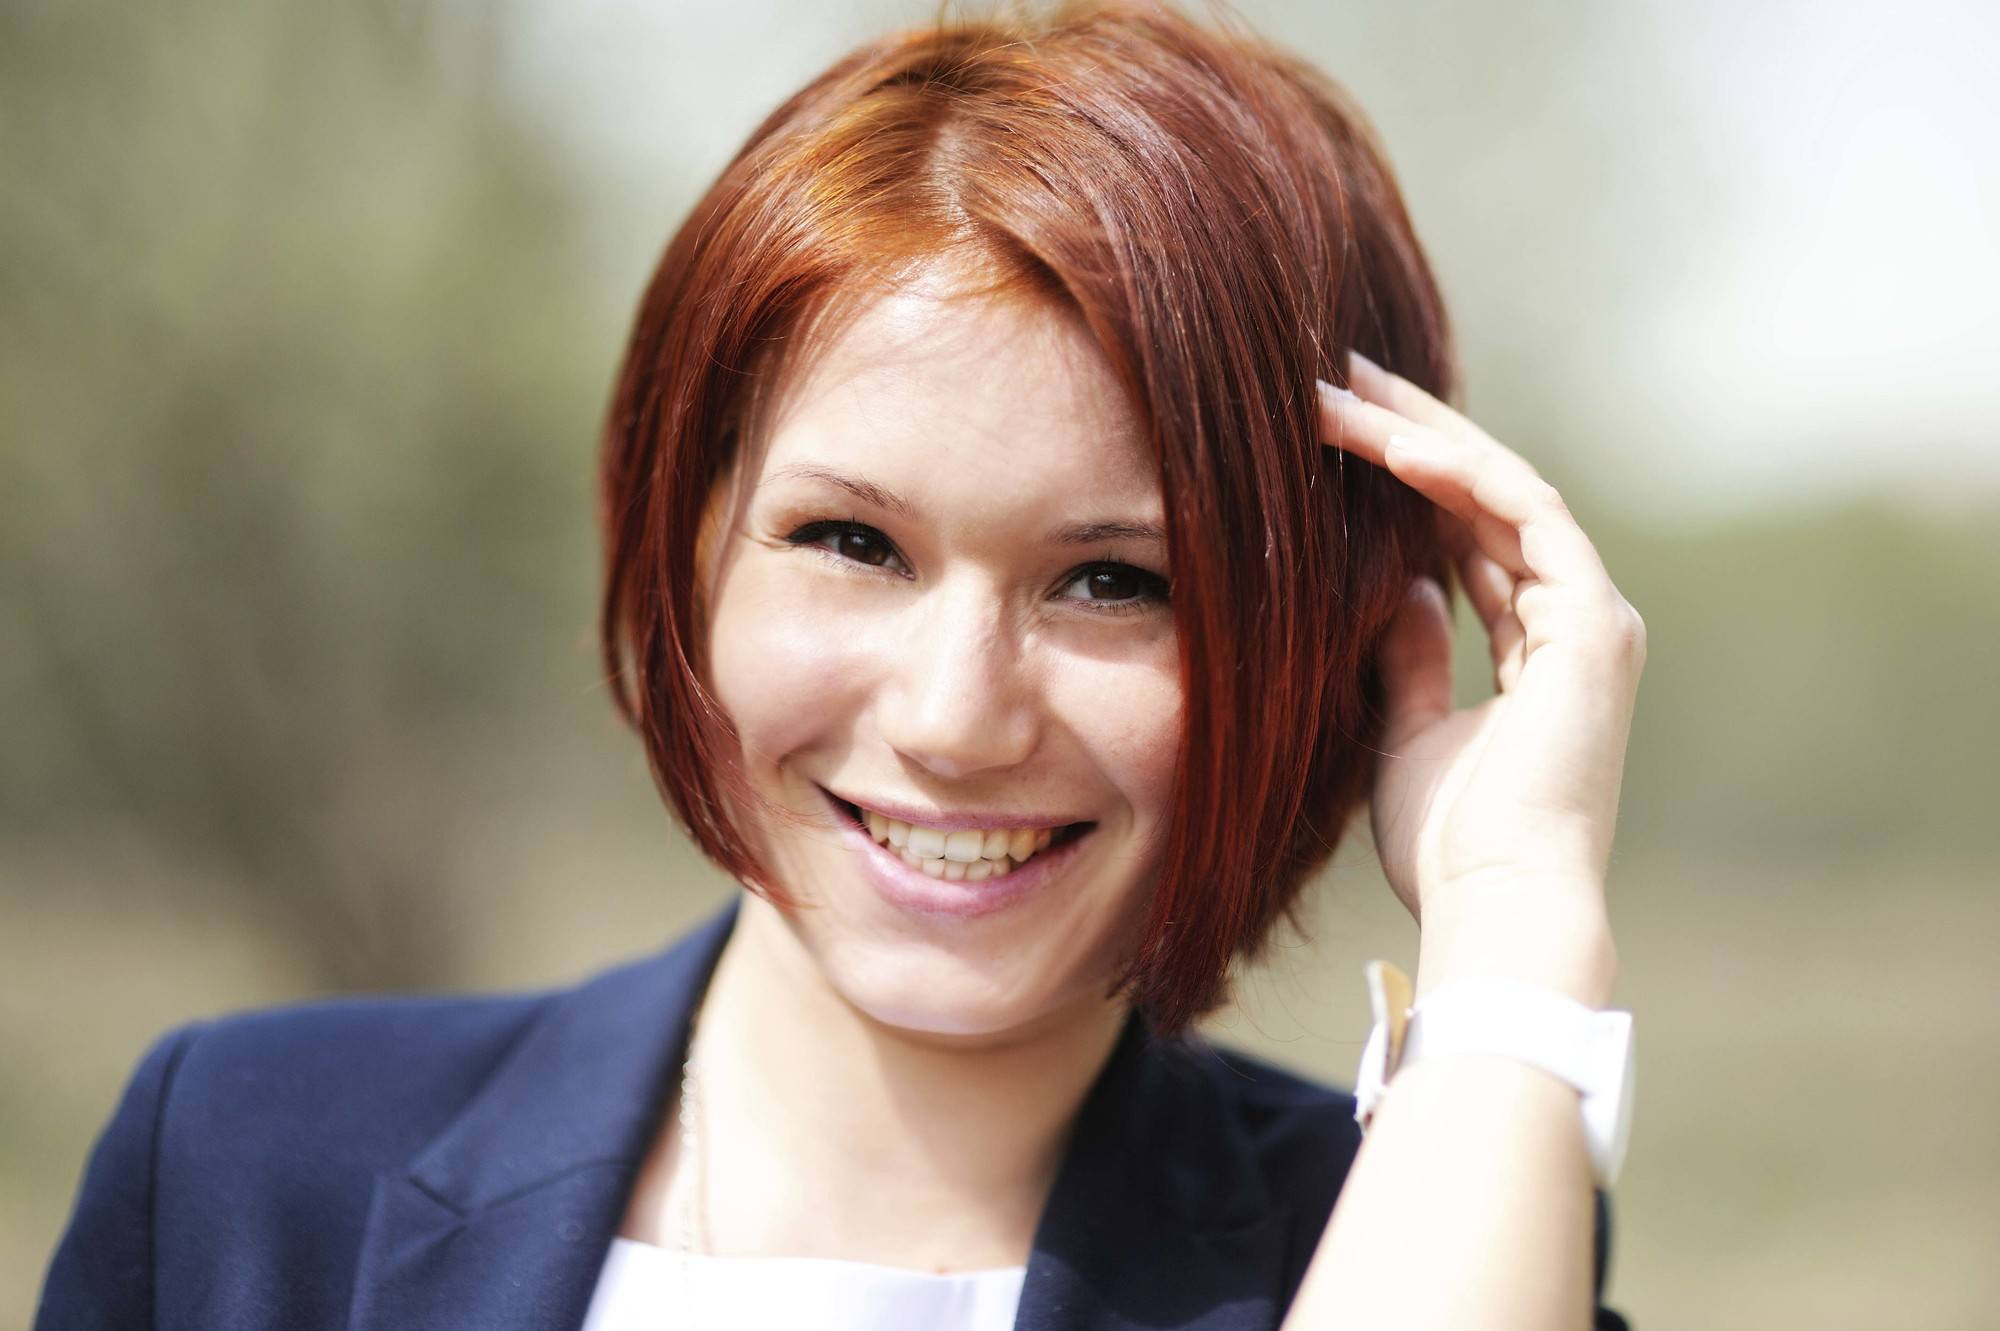 Short hair for round face: Closeup shot of a woman with short red hair smiling outdoors